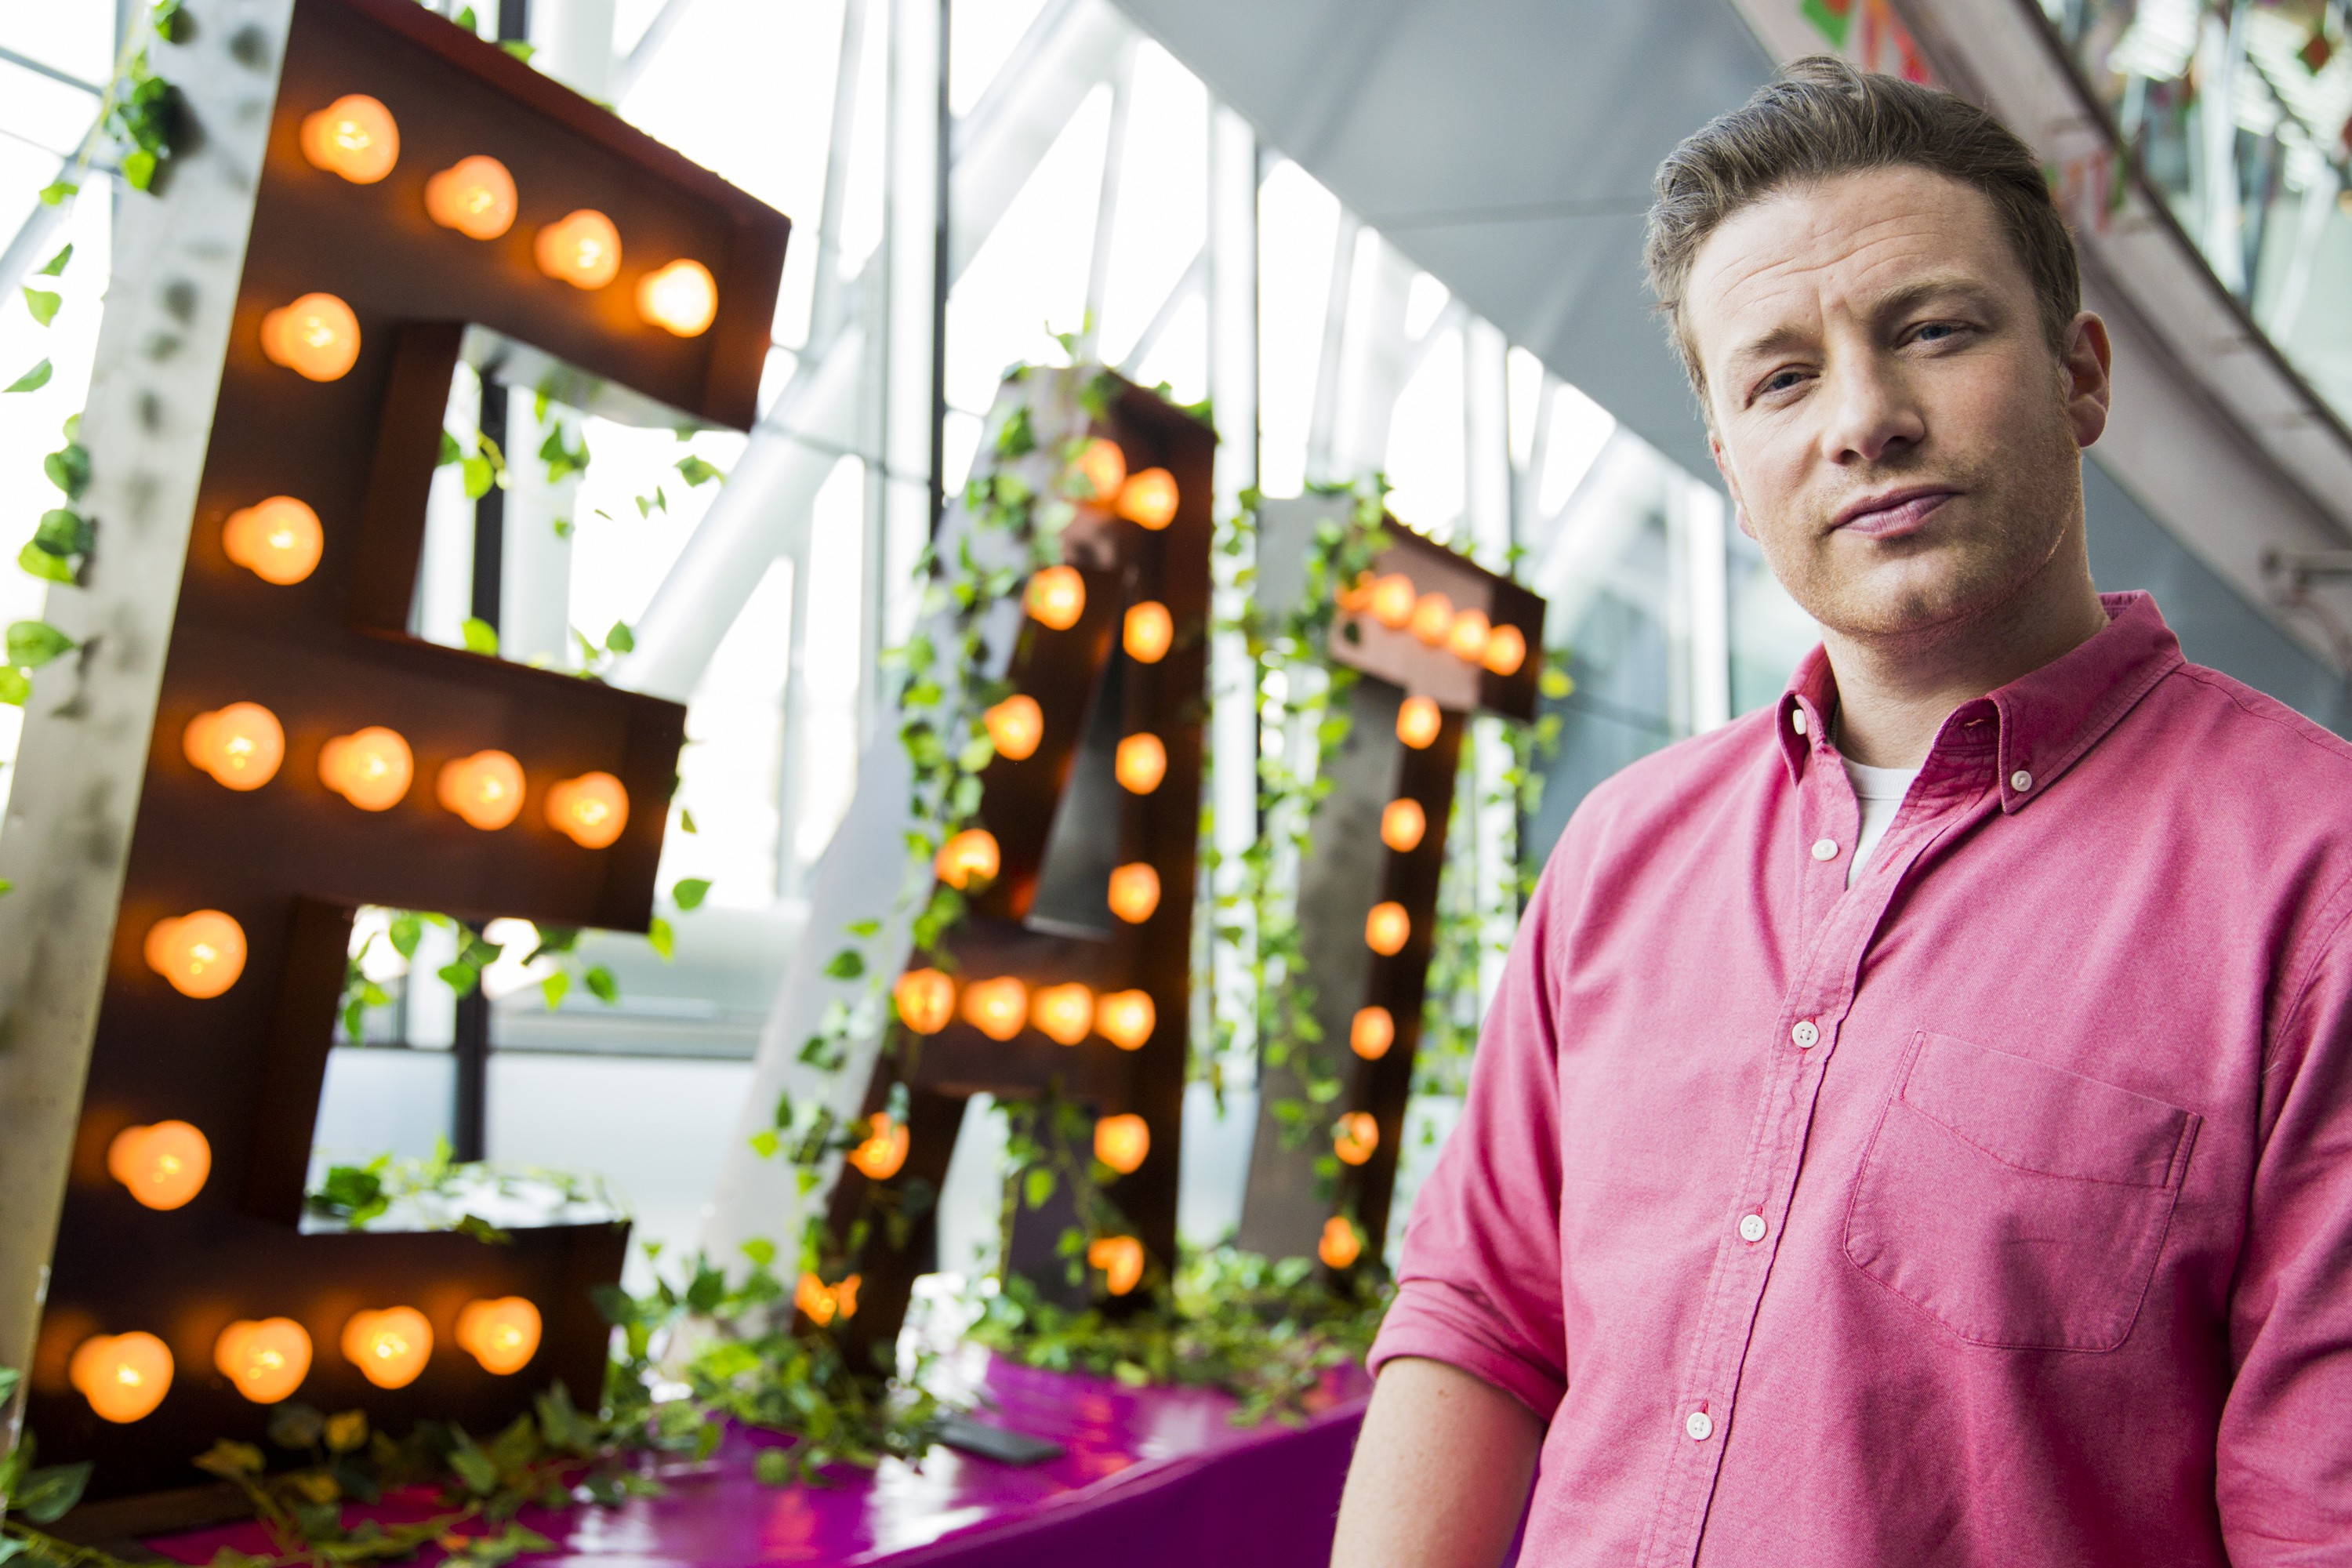 Jamie Oliver: chef, celebridade e seletor (Foto: Getty Images/ Tristan Fewings)